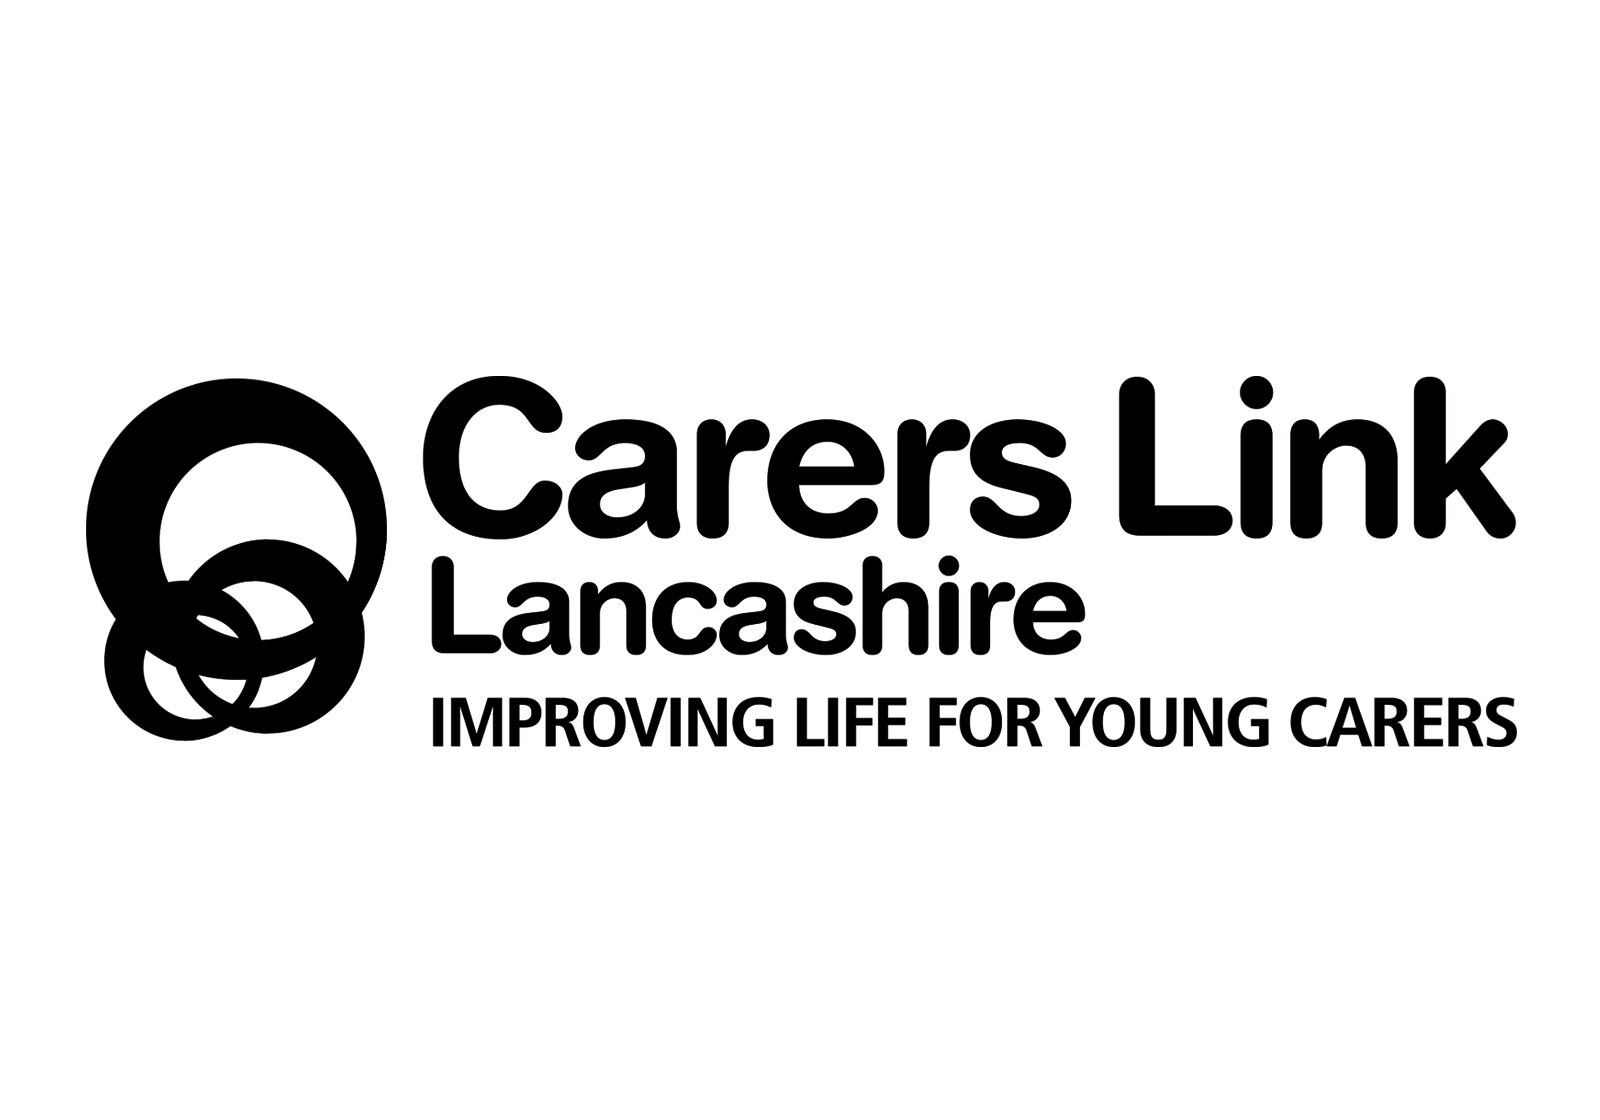 Carers Link